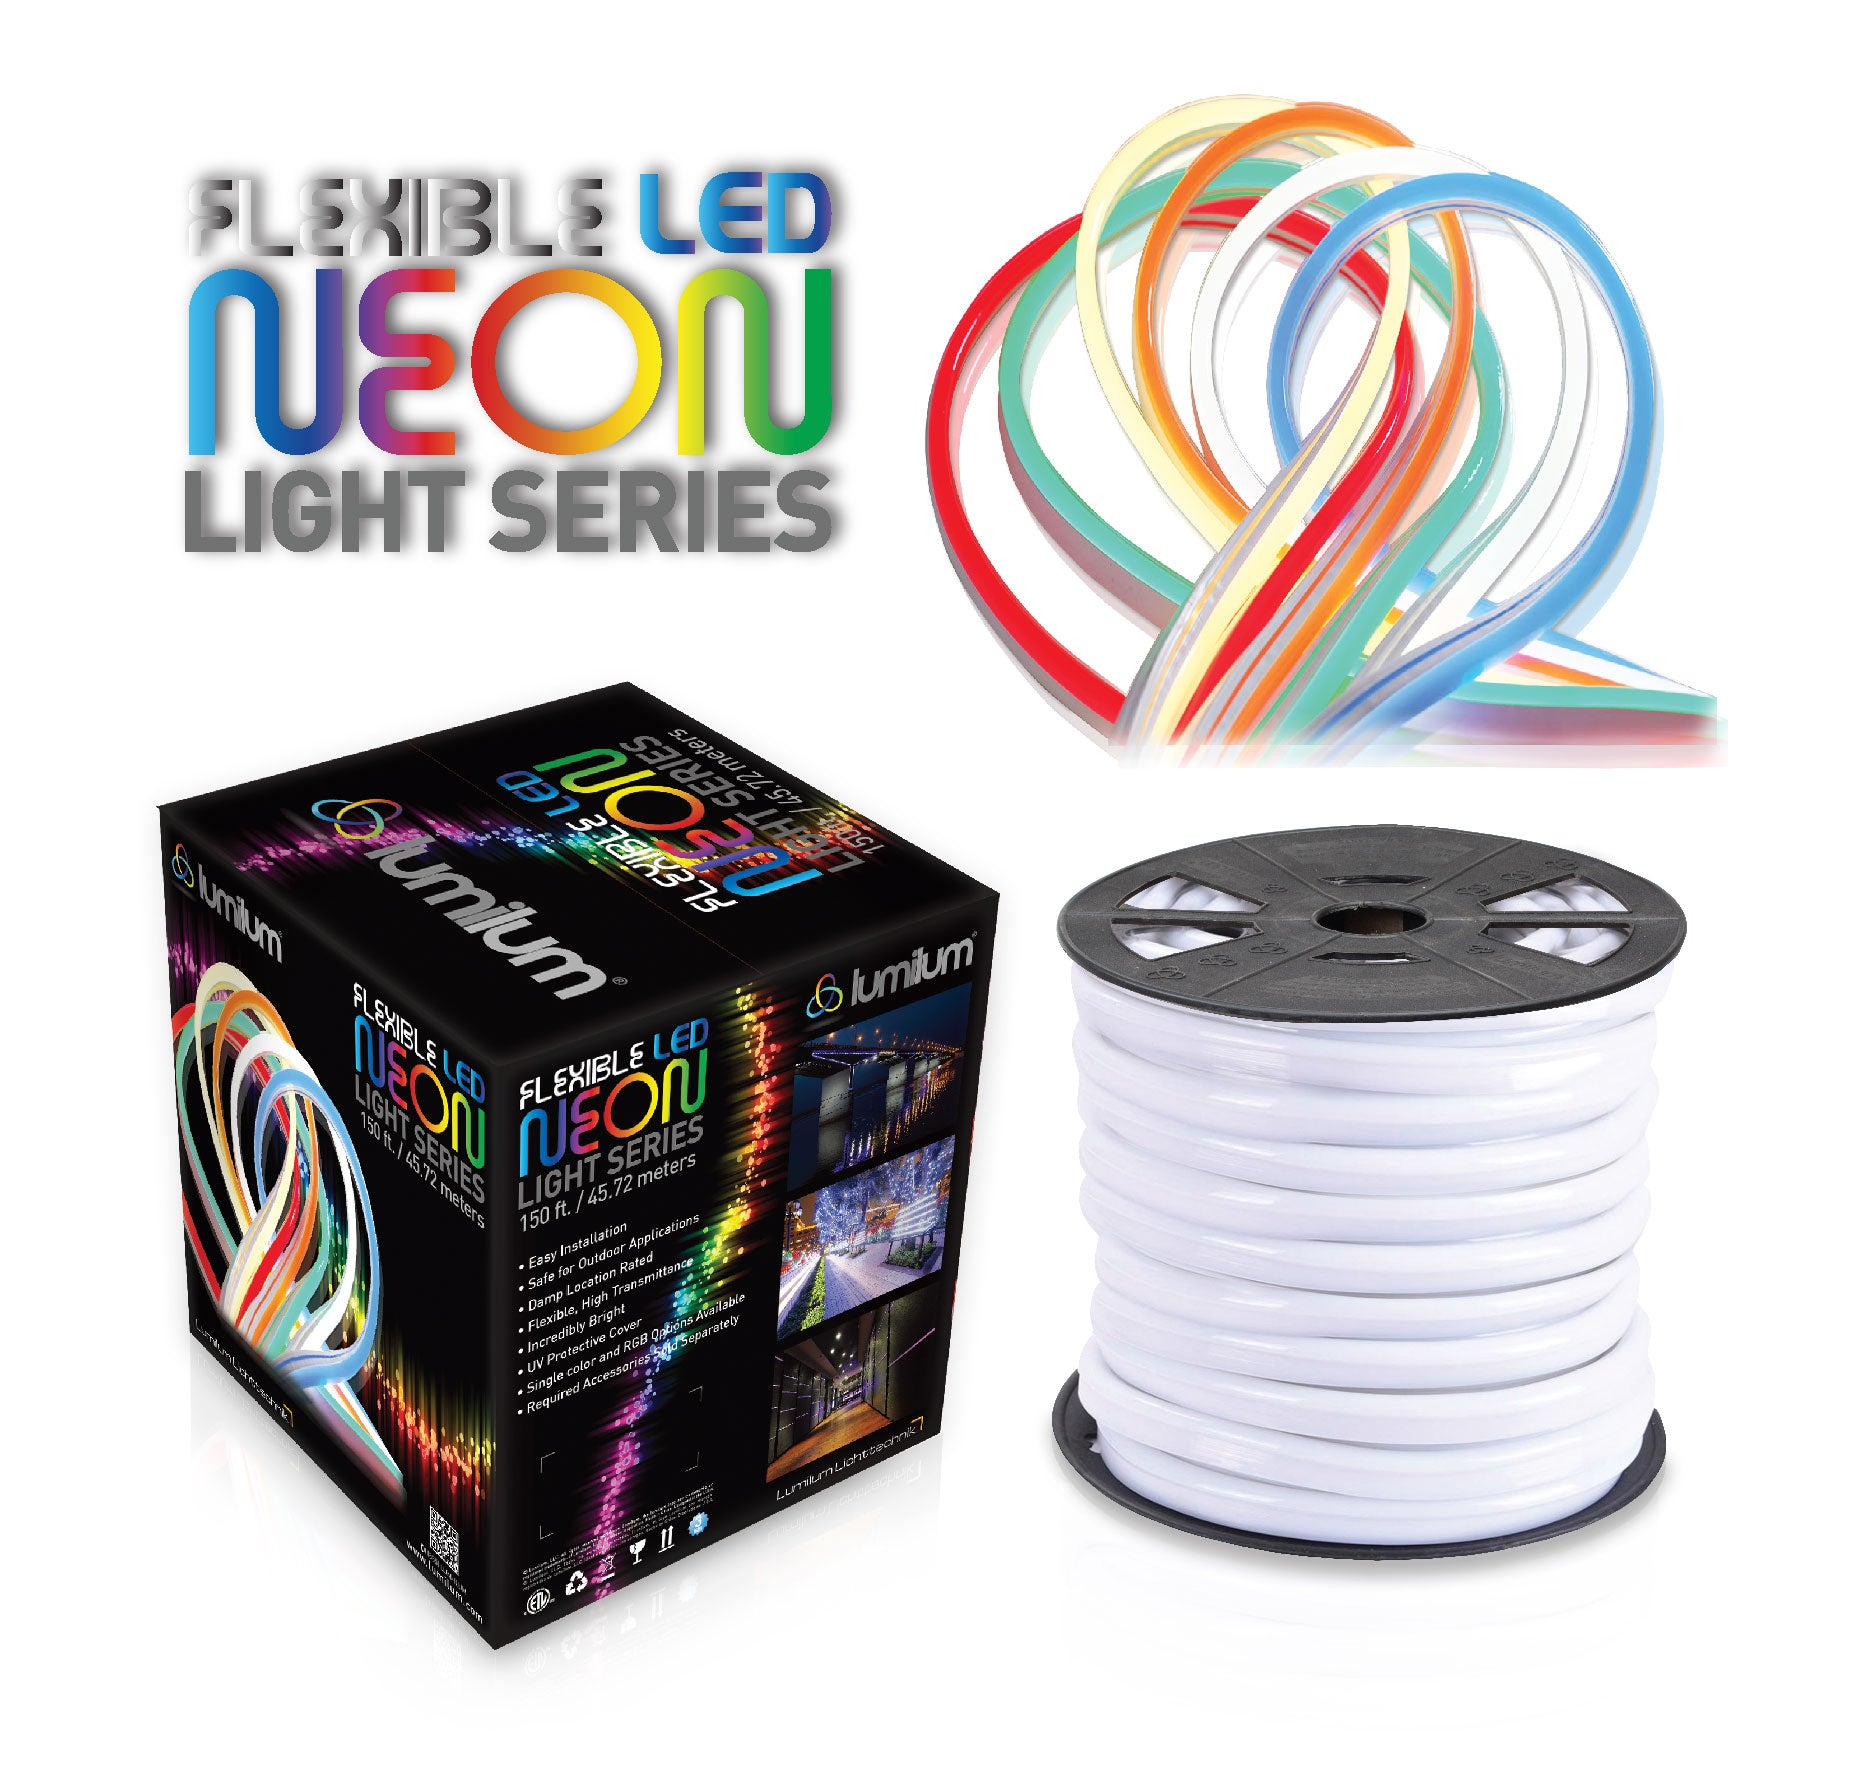 lumilum brand led neon light black and multicolor packaging with colorful strip lights and reel displayed on right